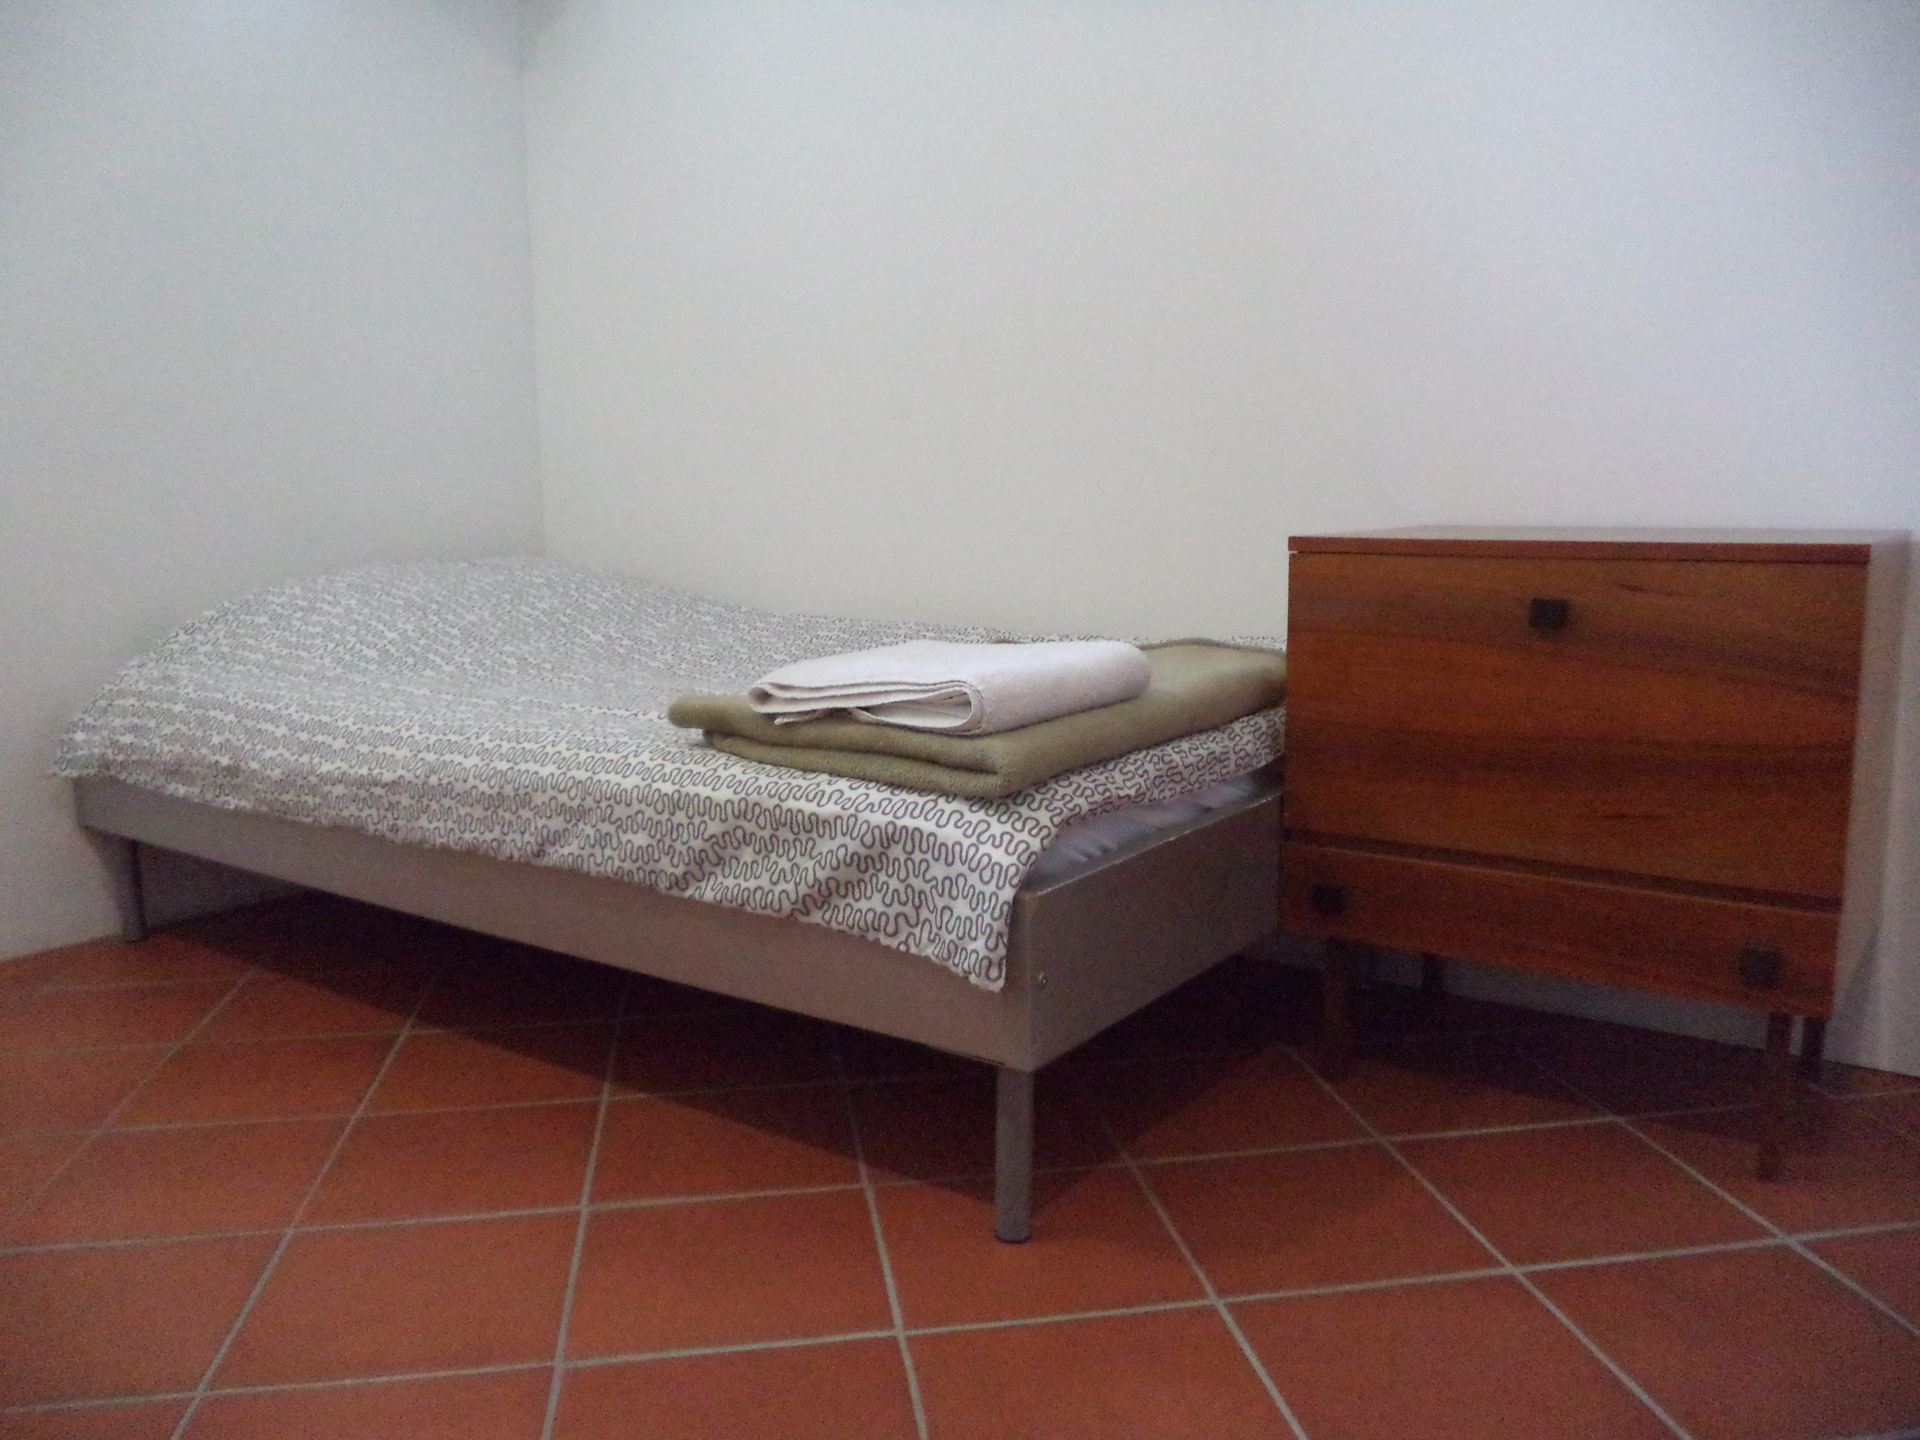 A prepared bed in the second bedroom, ready for our guests (large apartment).